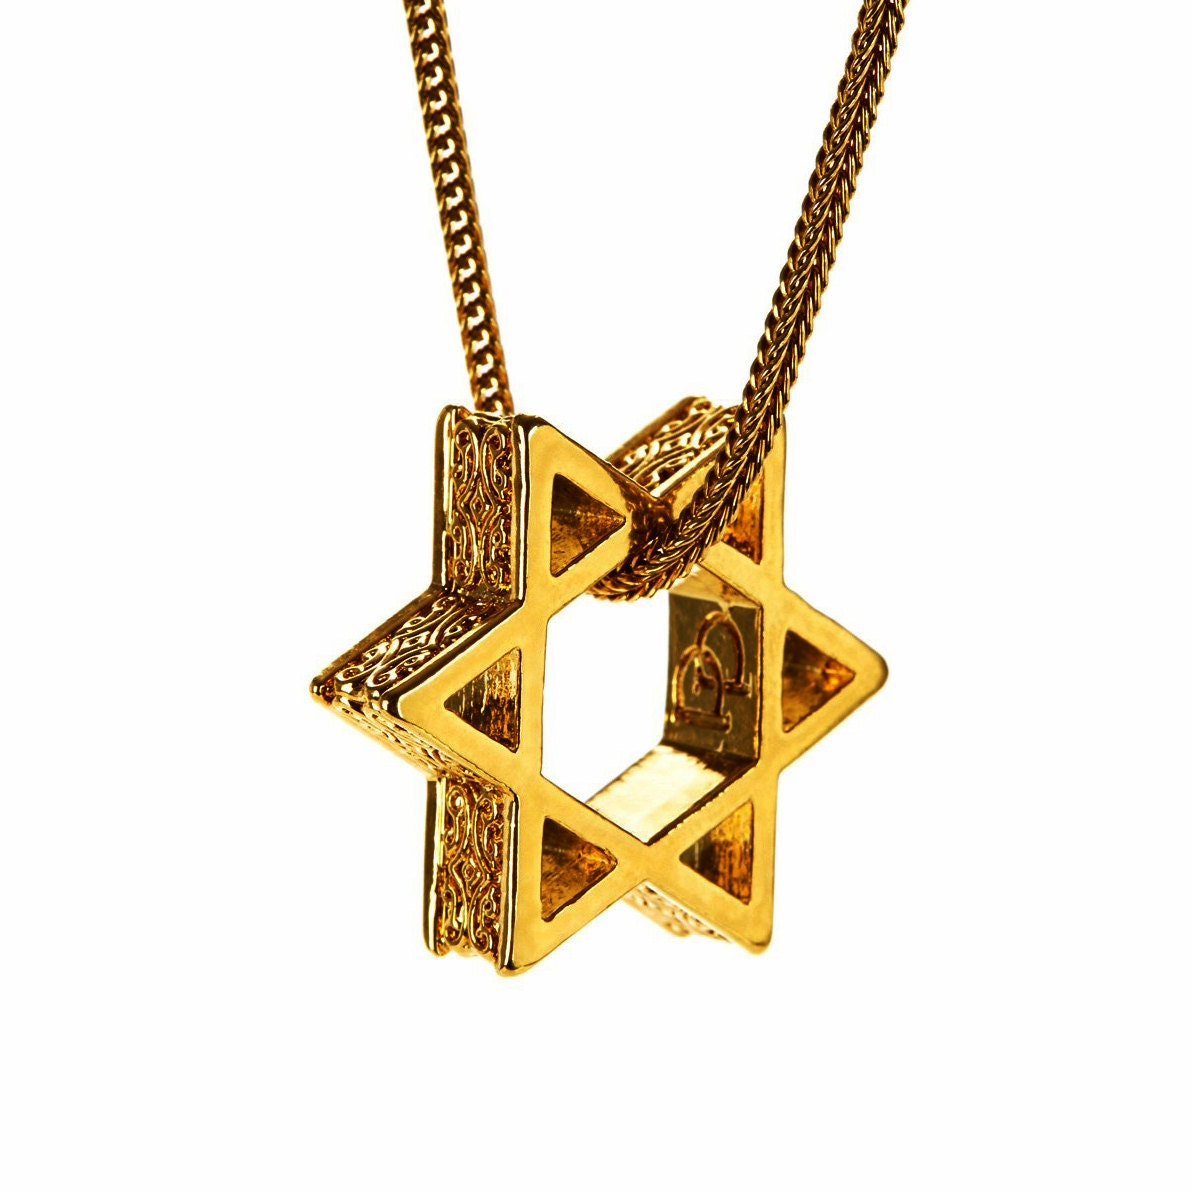 Mens necklace star of david pendant 14k gold by perepaix for Star of david necklace mens jewelry